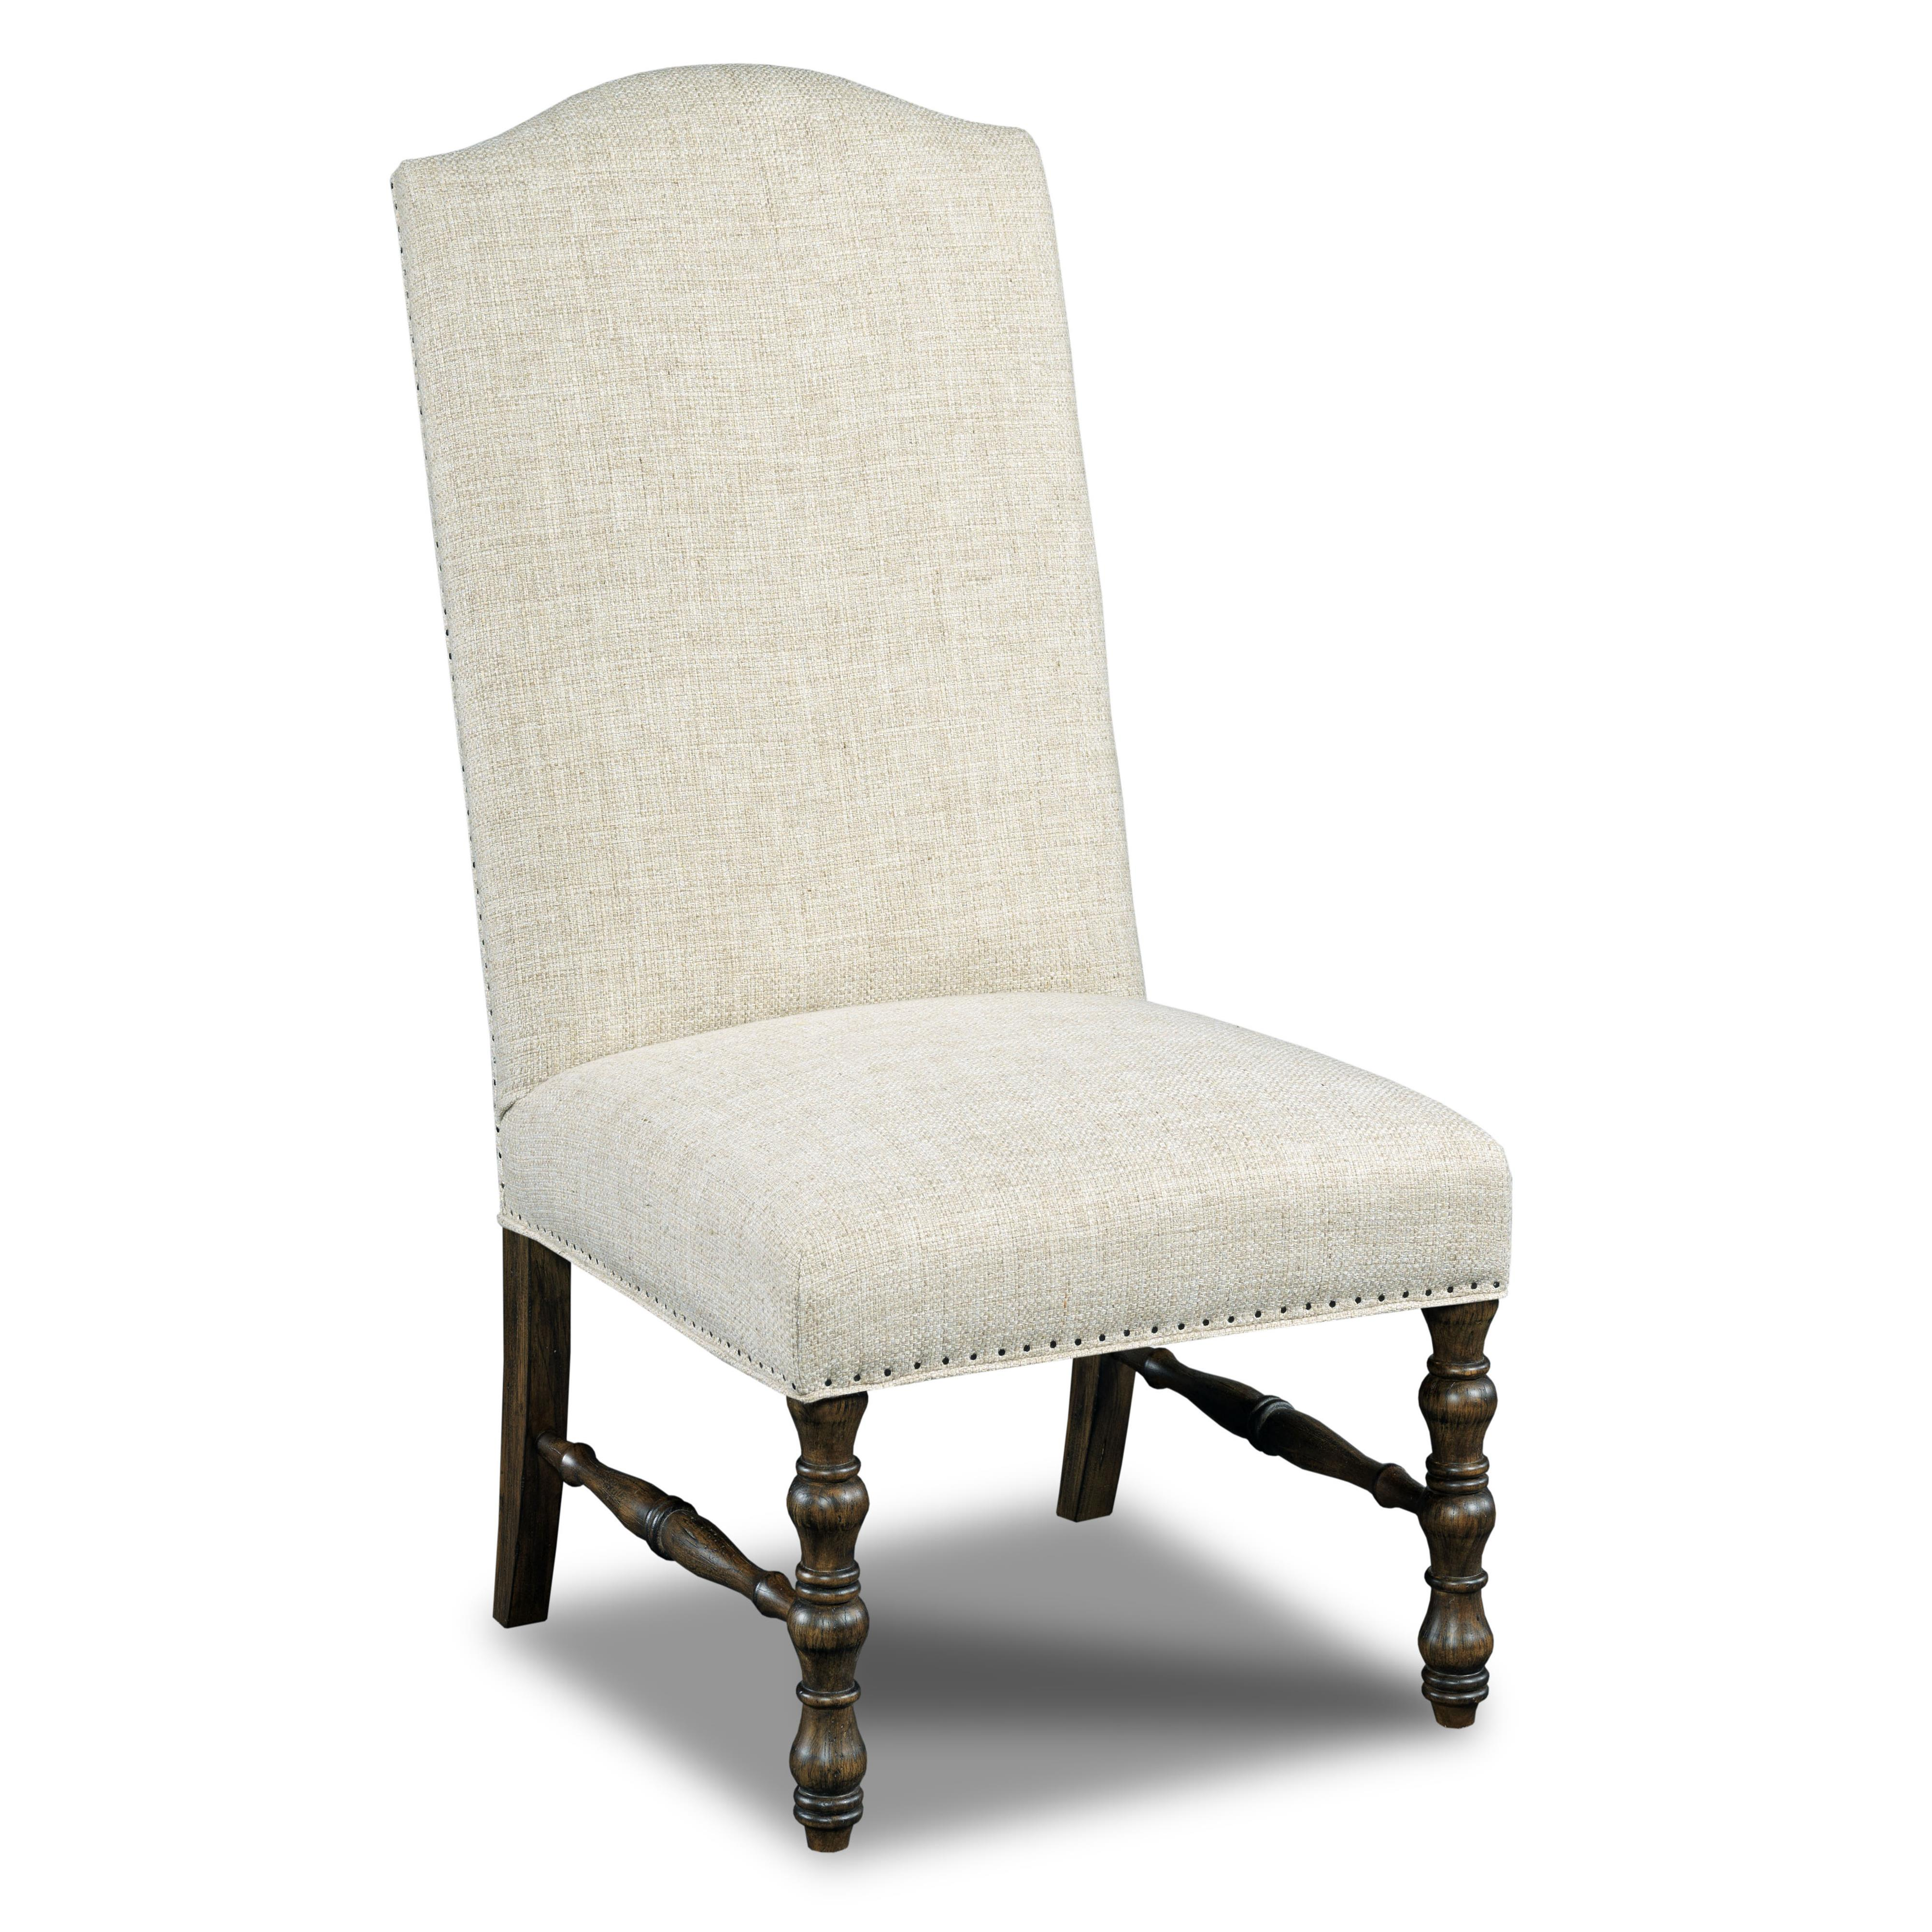 Hooker Furniture Dining Chairs Upholstered Armless Dining Chair - Item Number: 300-350127